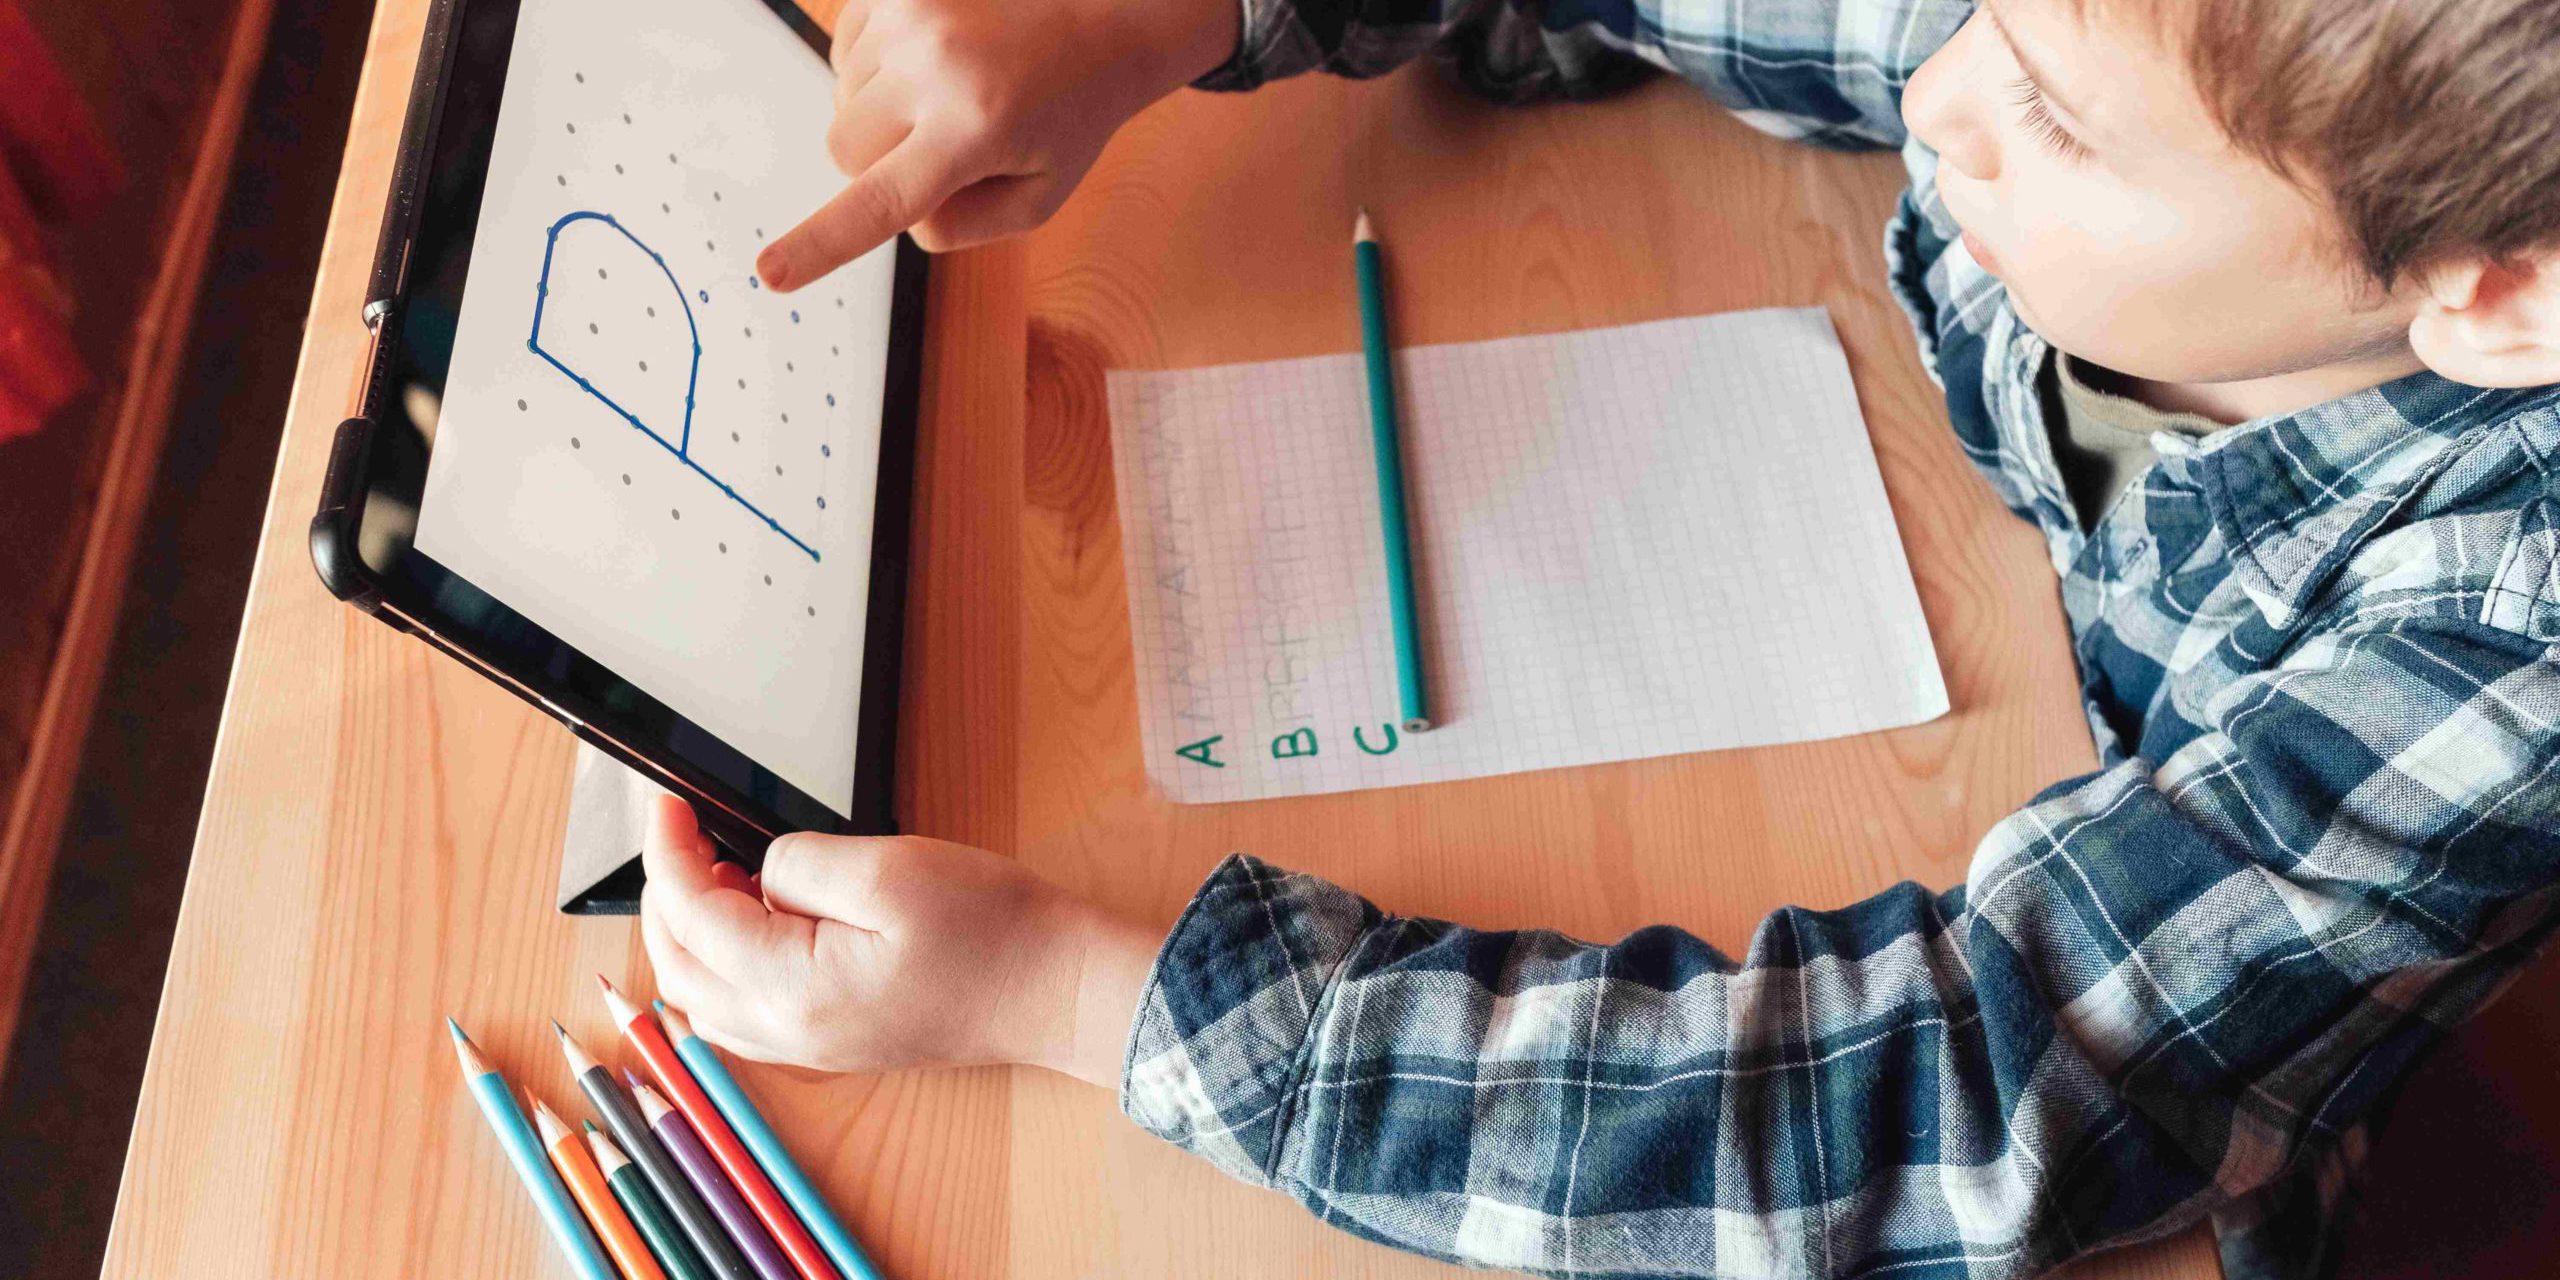 6-study-tracking-apps-to-track-student-progress